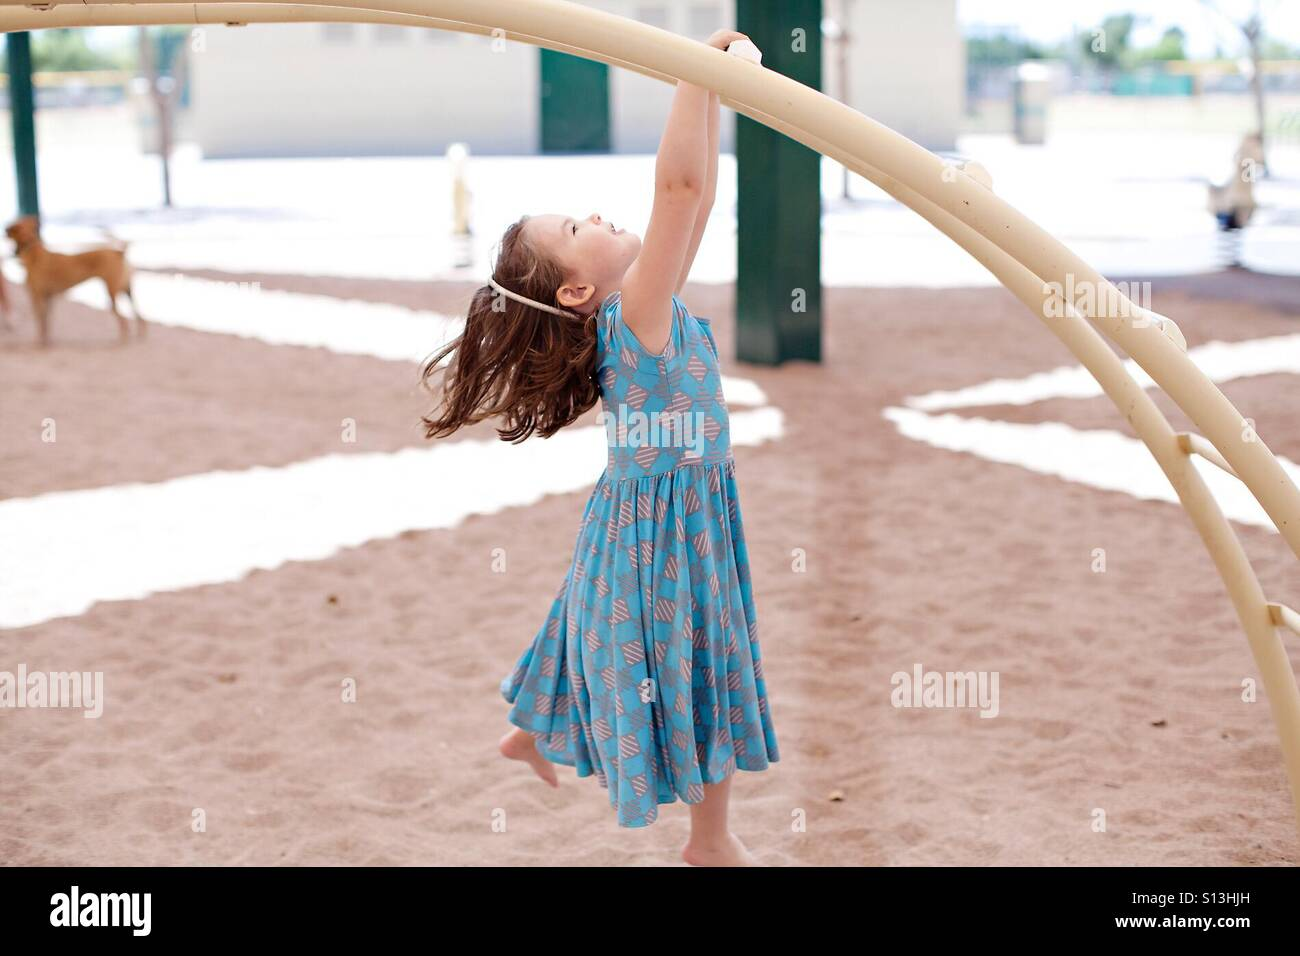 Girl hanging from monkey bars at park - Stock Image